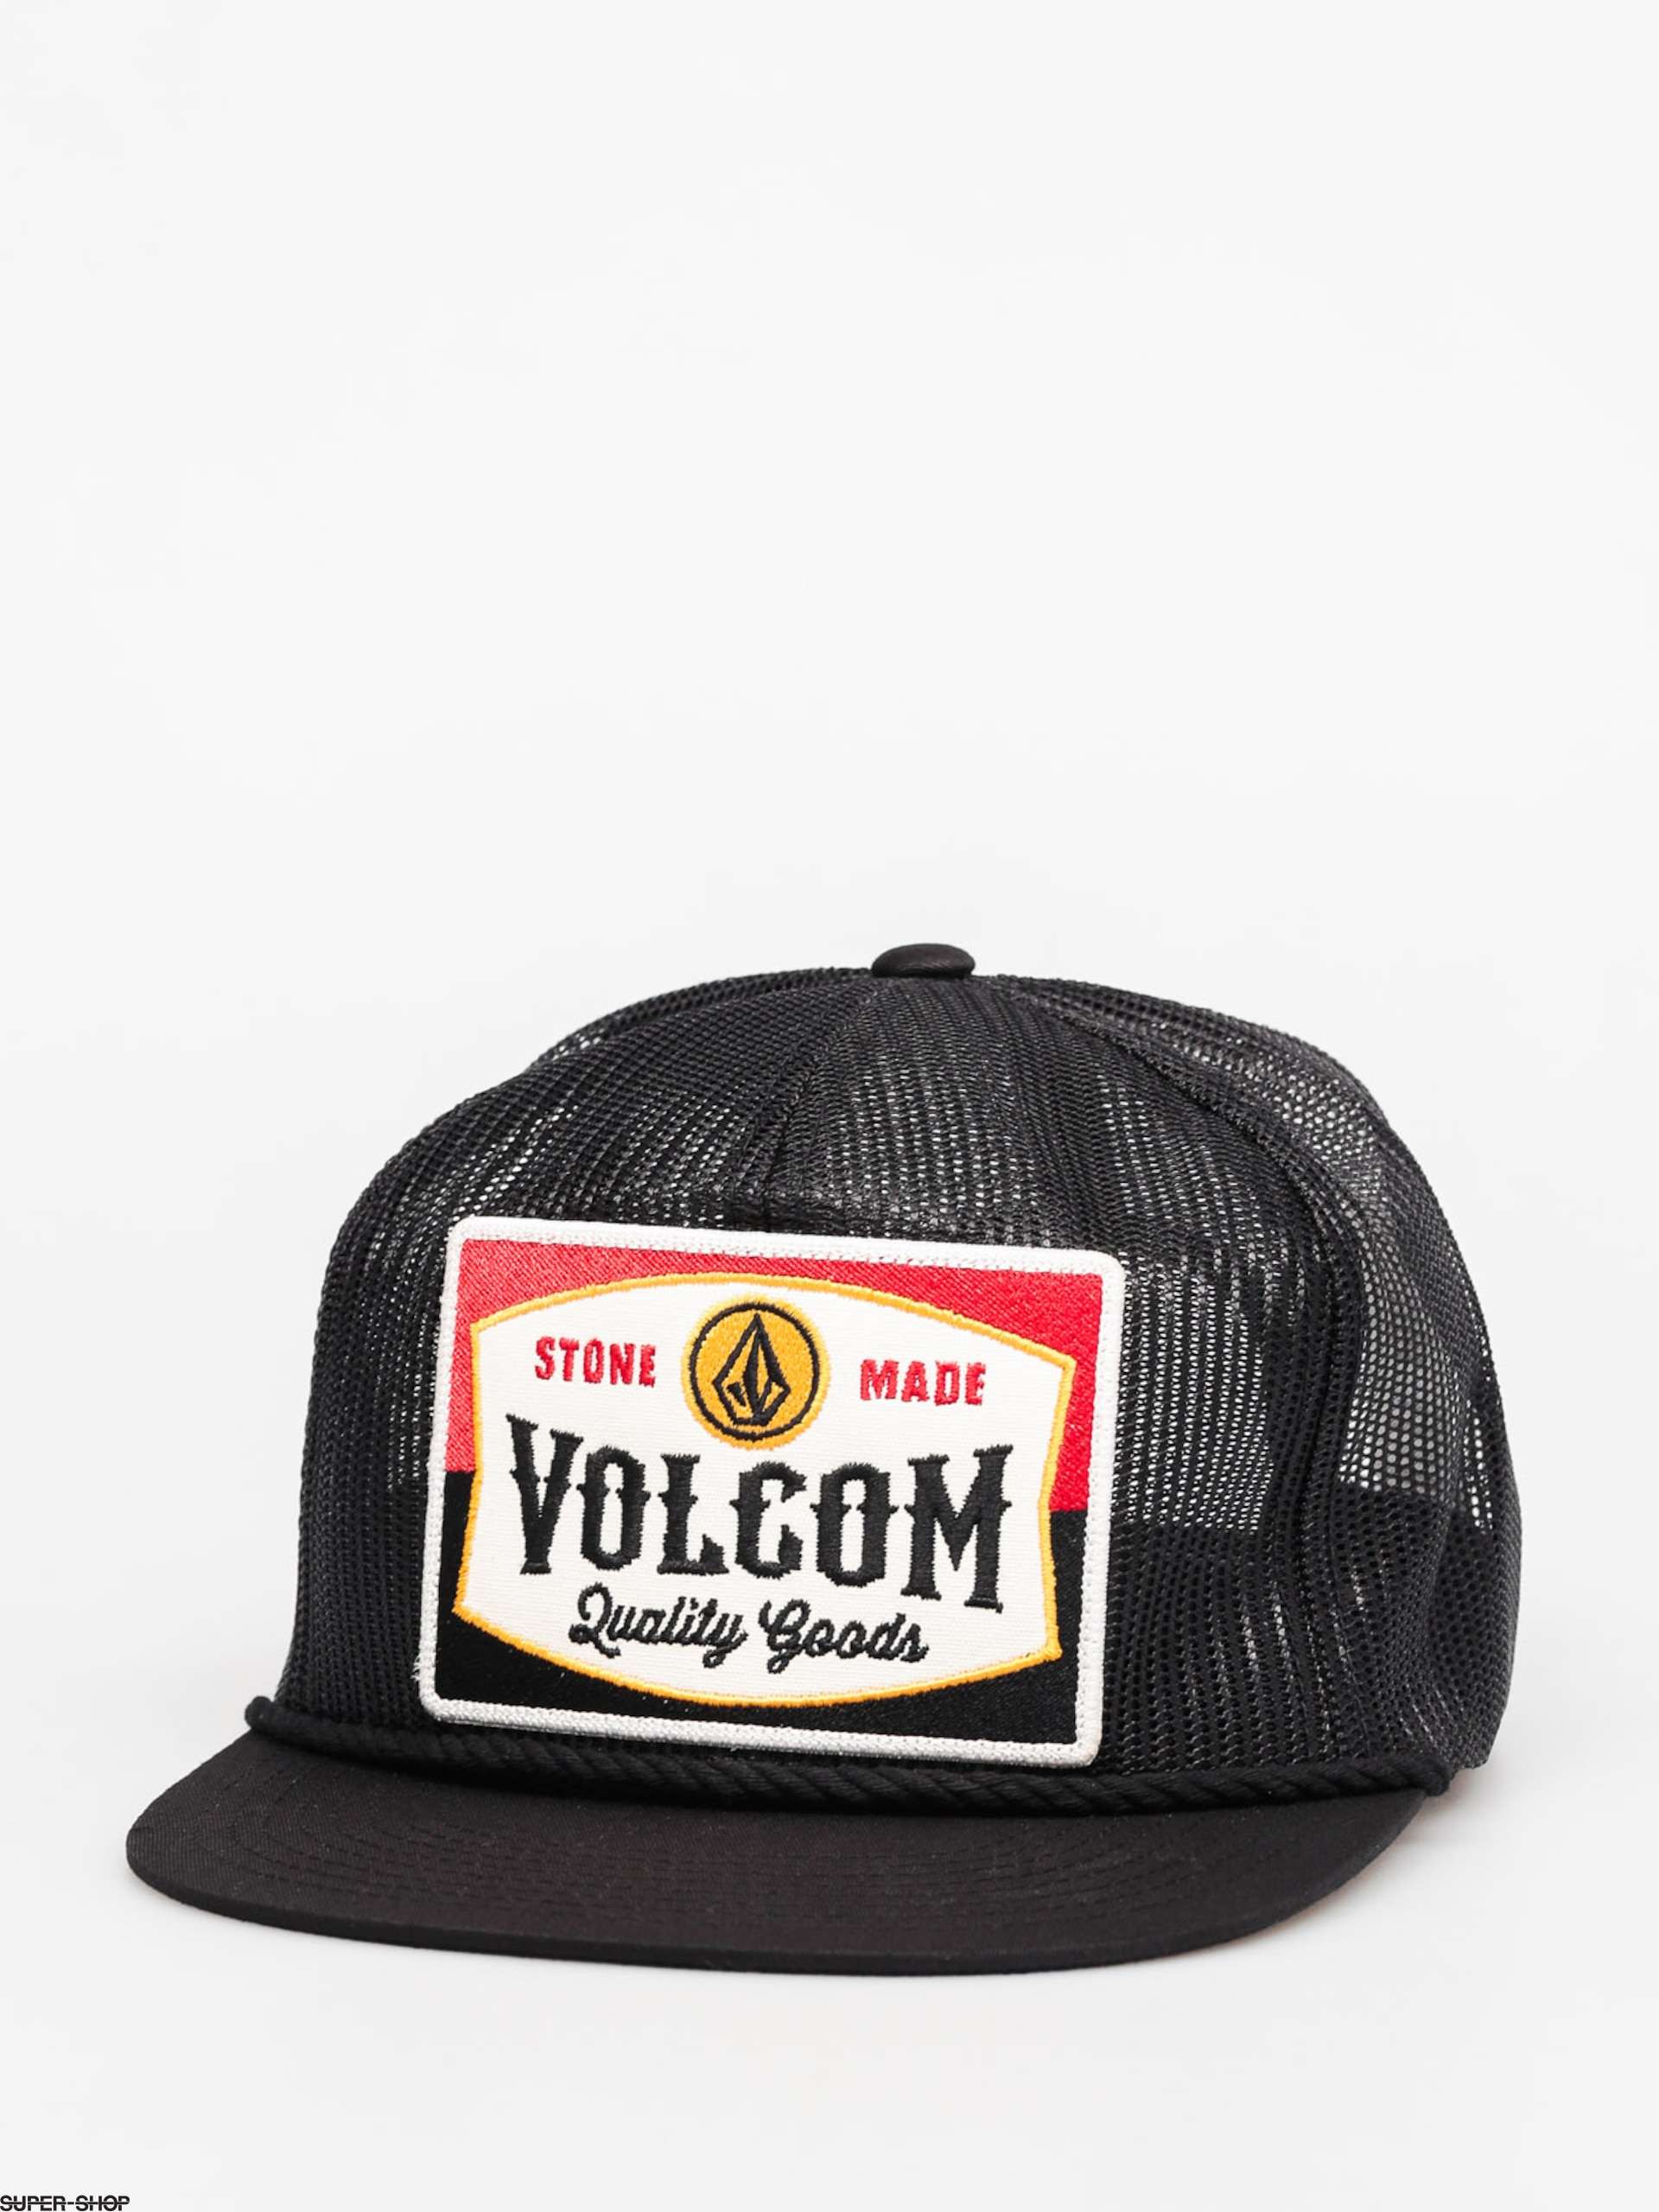 275b1b5a denmark volcom rad red stonar waves red trucker hat 76a3b 63c5b; coupon for volcom  cap patch panel blk 95276 8a4a7